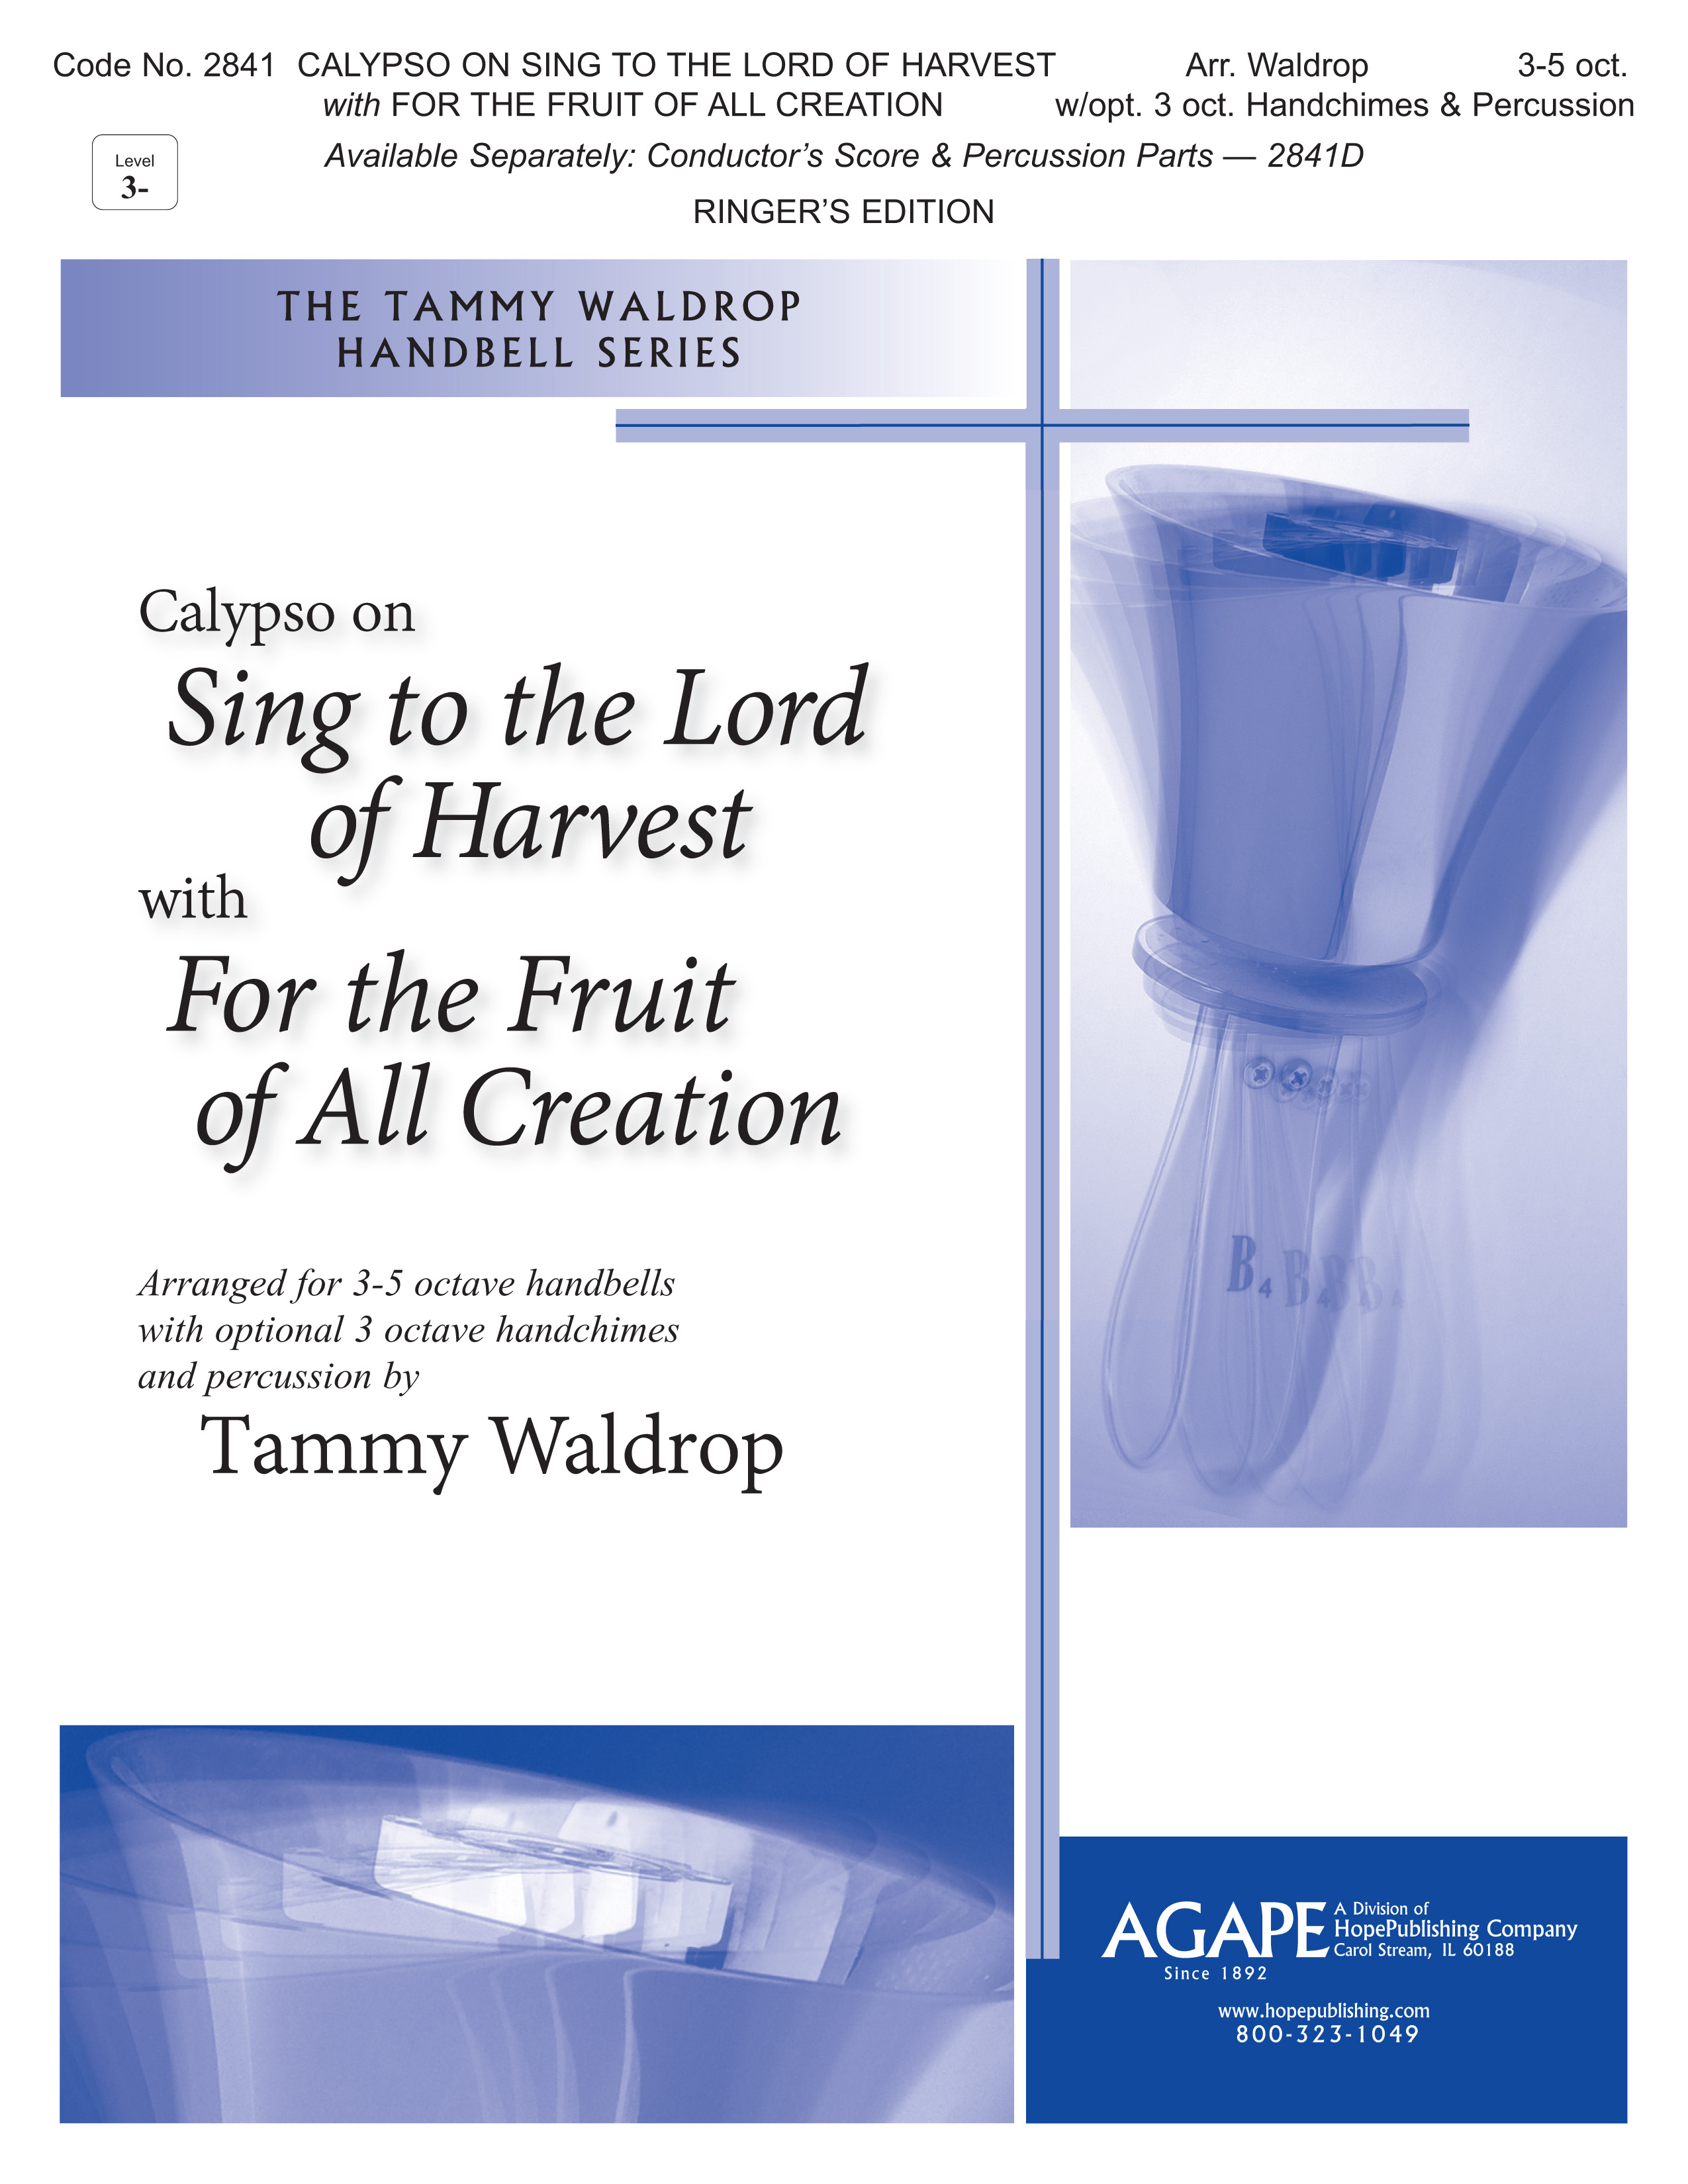 Calypso on Sing to the lord of Harvest with For the Fruit - 3-5 Oct Cover Image